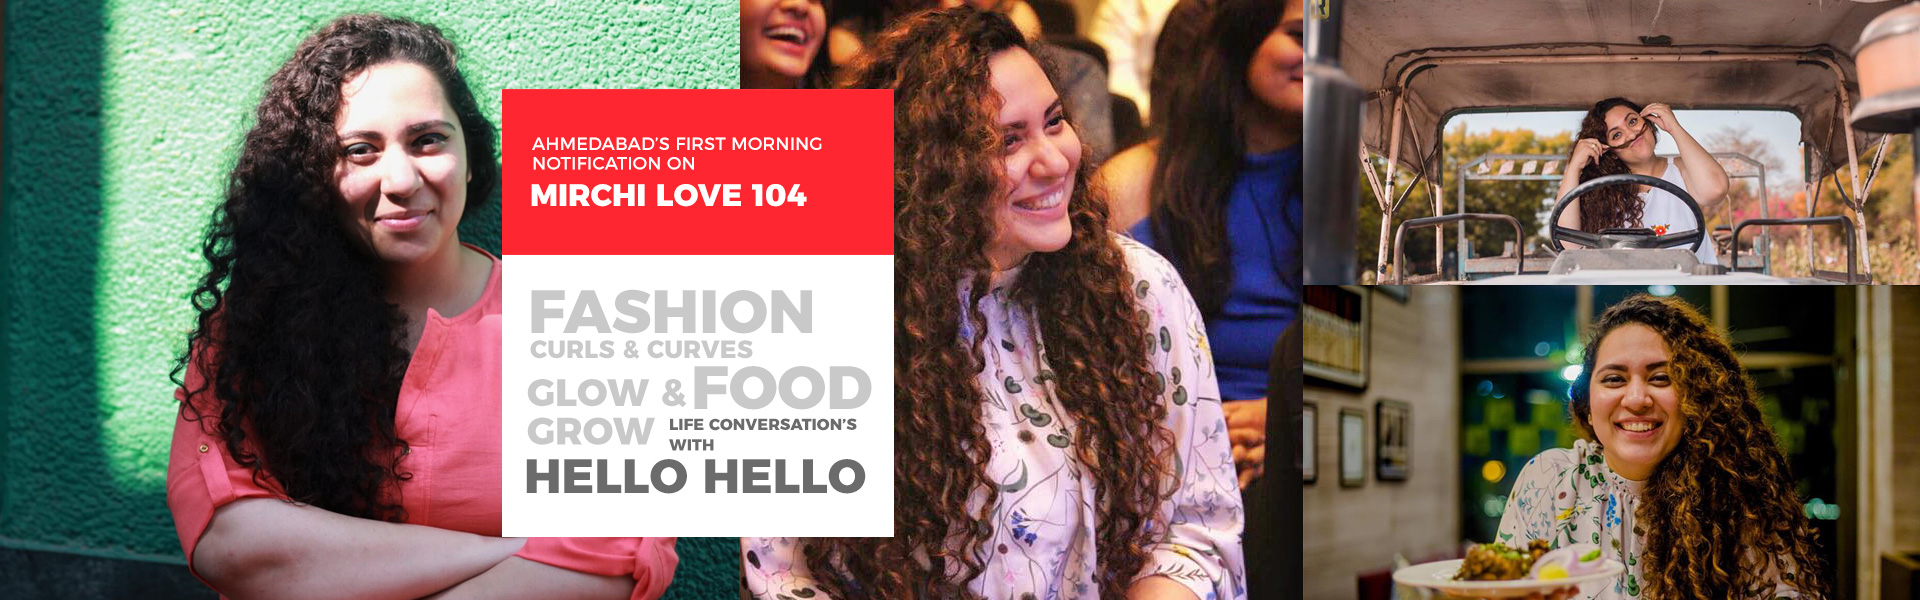 Ekta Sandhir Curls & Curves Ahmedabad's First Morning Notification On Mirchi Love 104 Food Fashion Life Conversation's with Hello Hello Glow & Grow